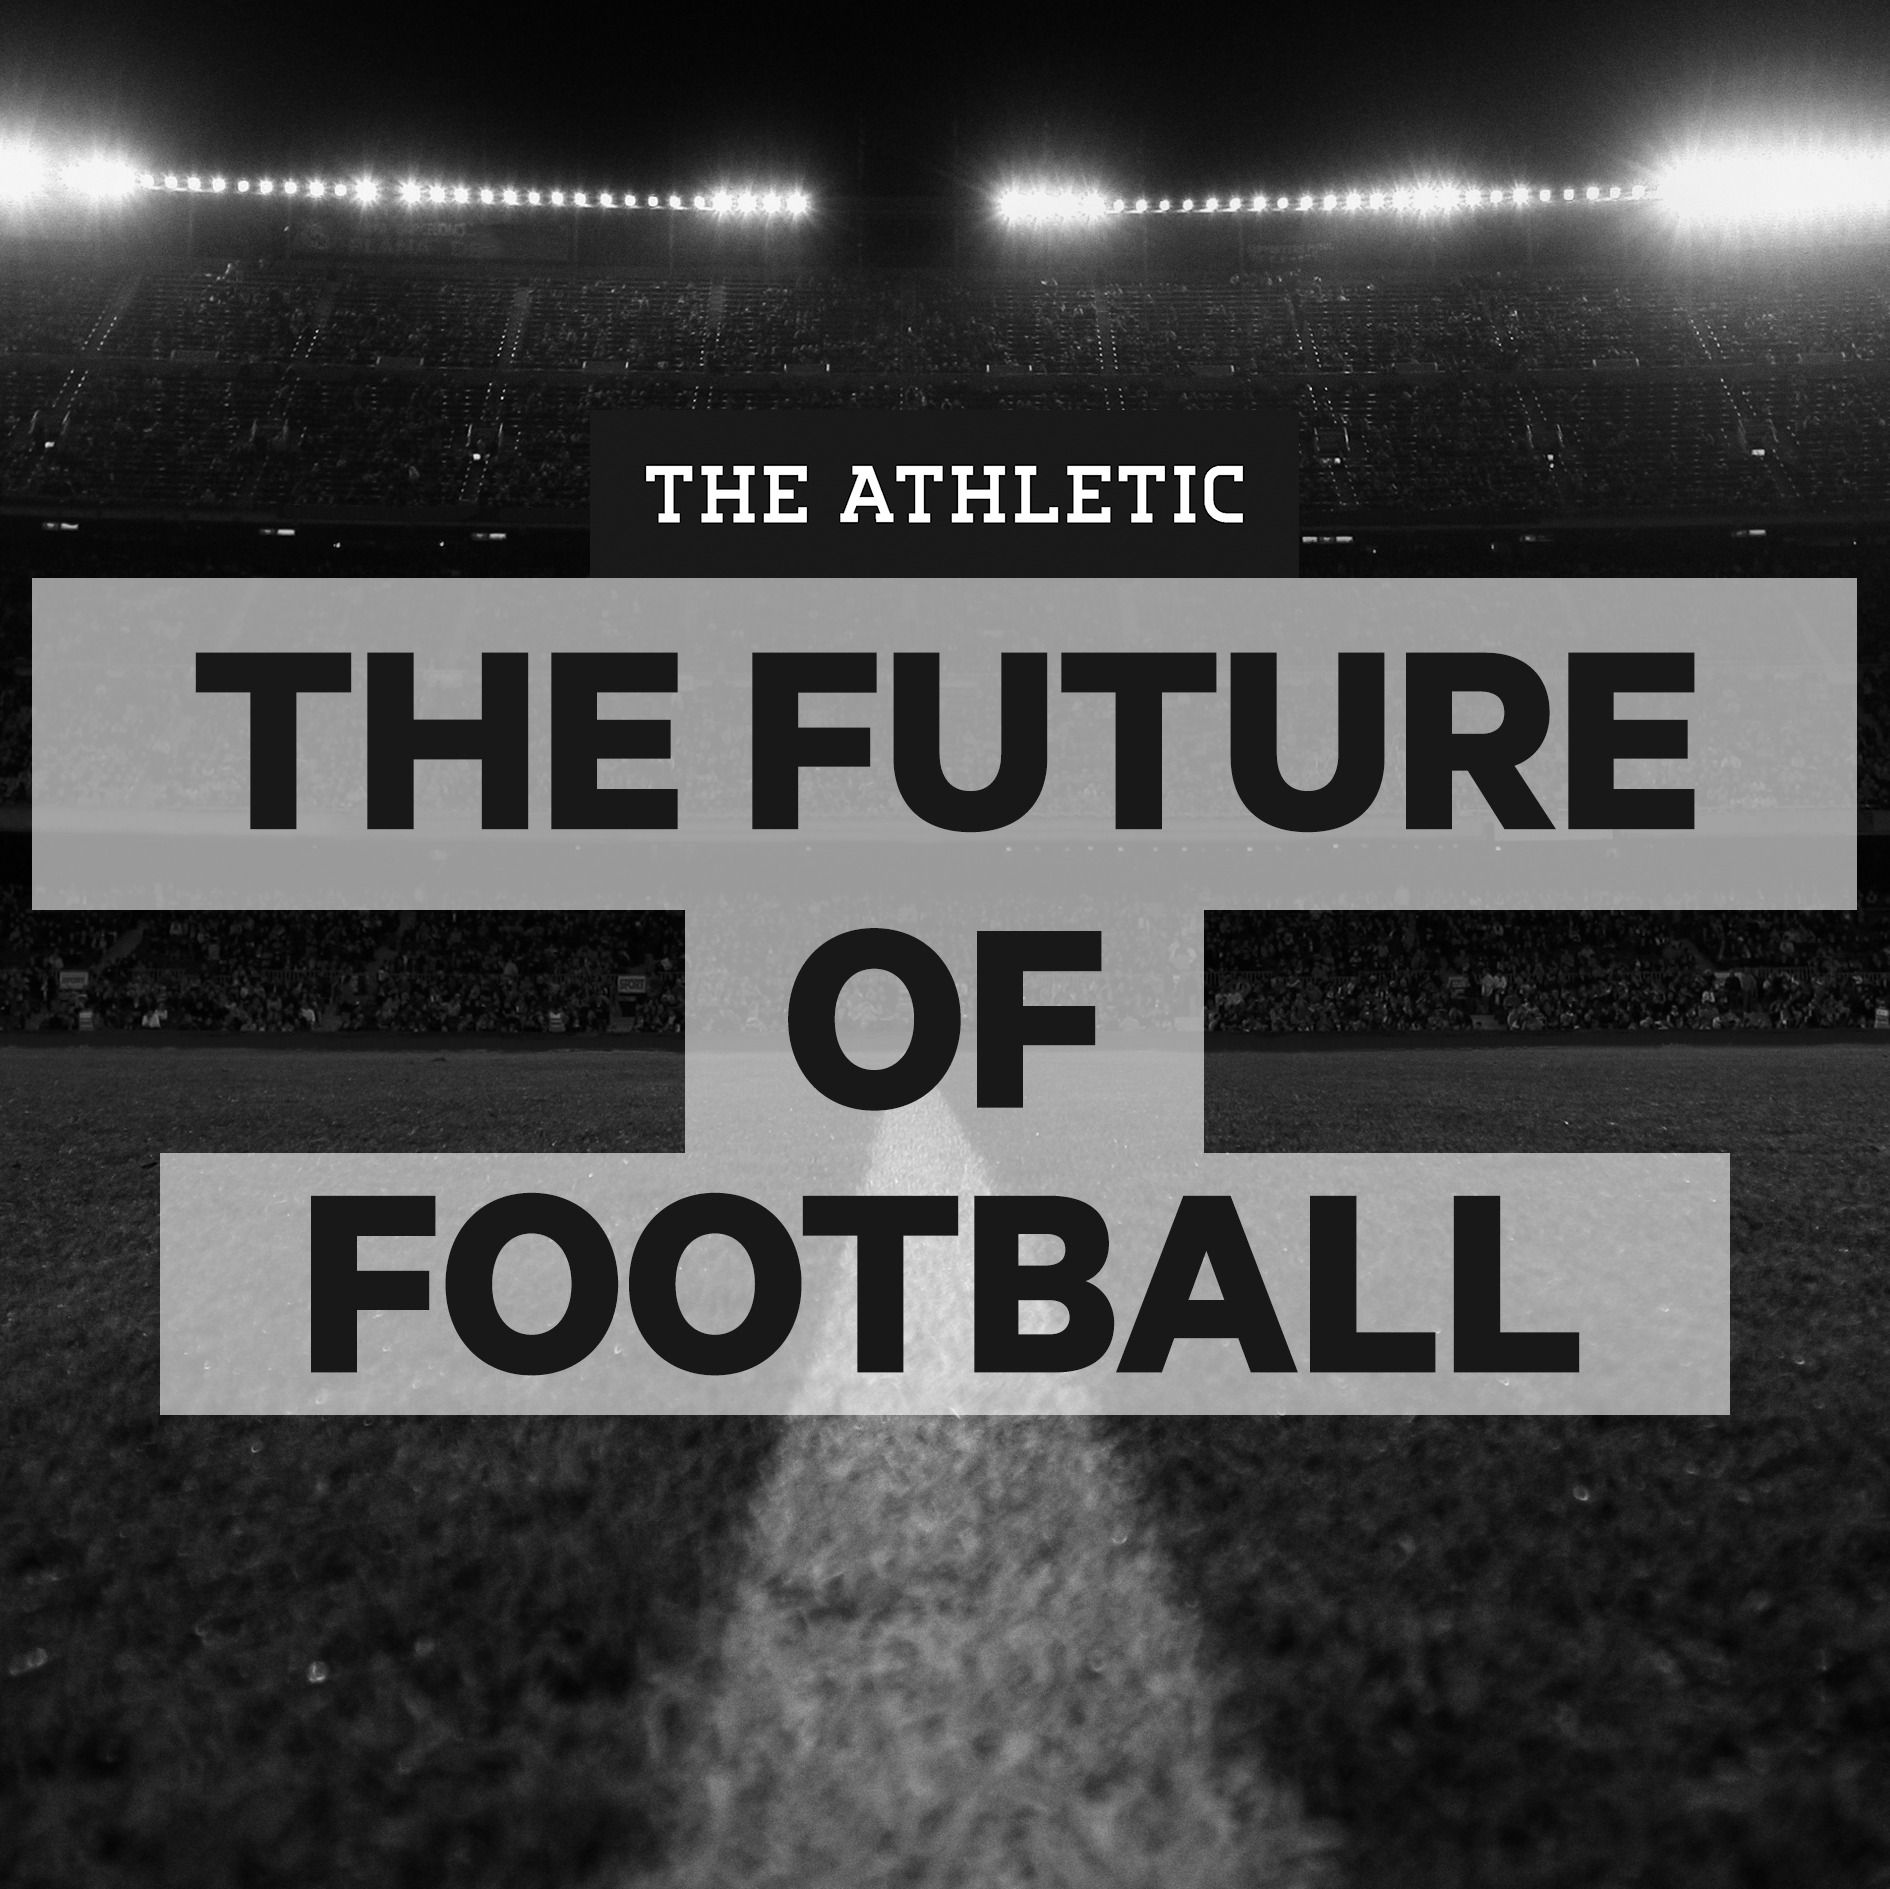 Future of Football: Why would anyone want to own a football club?